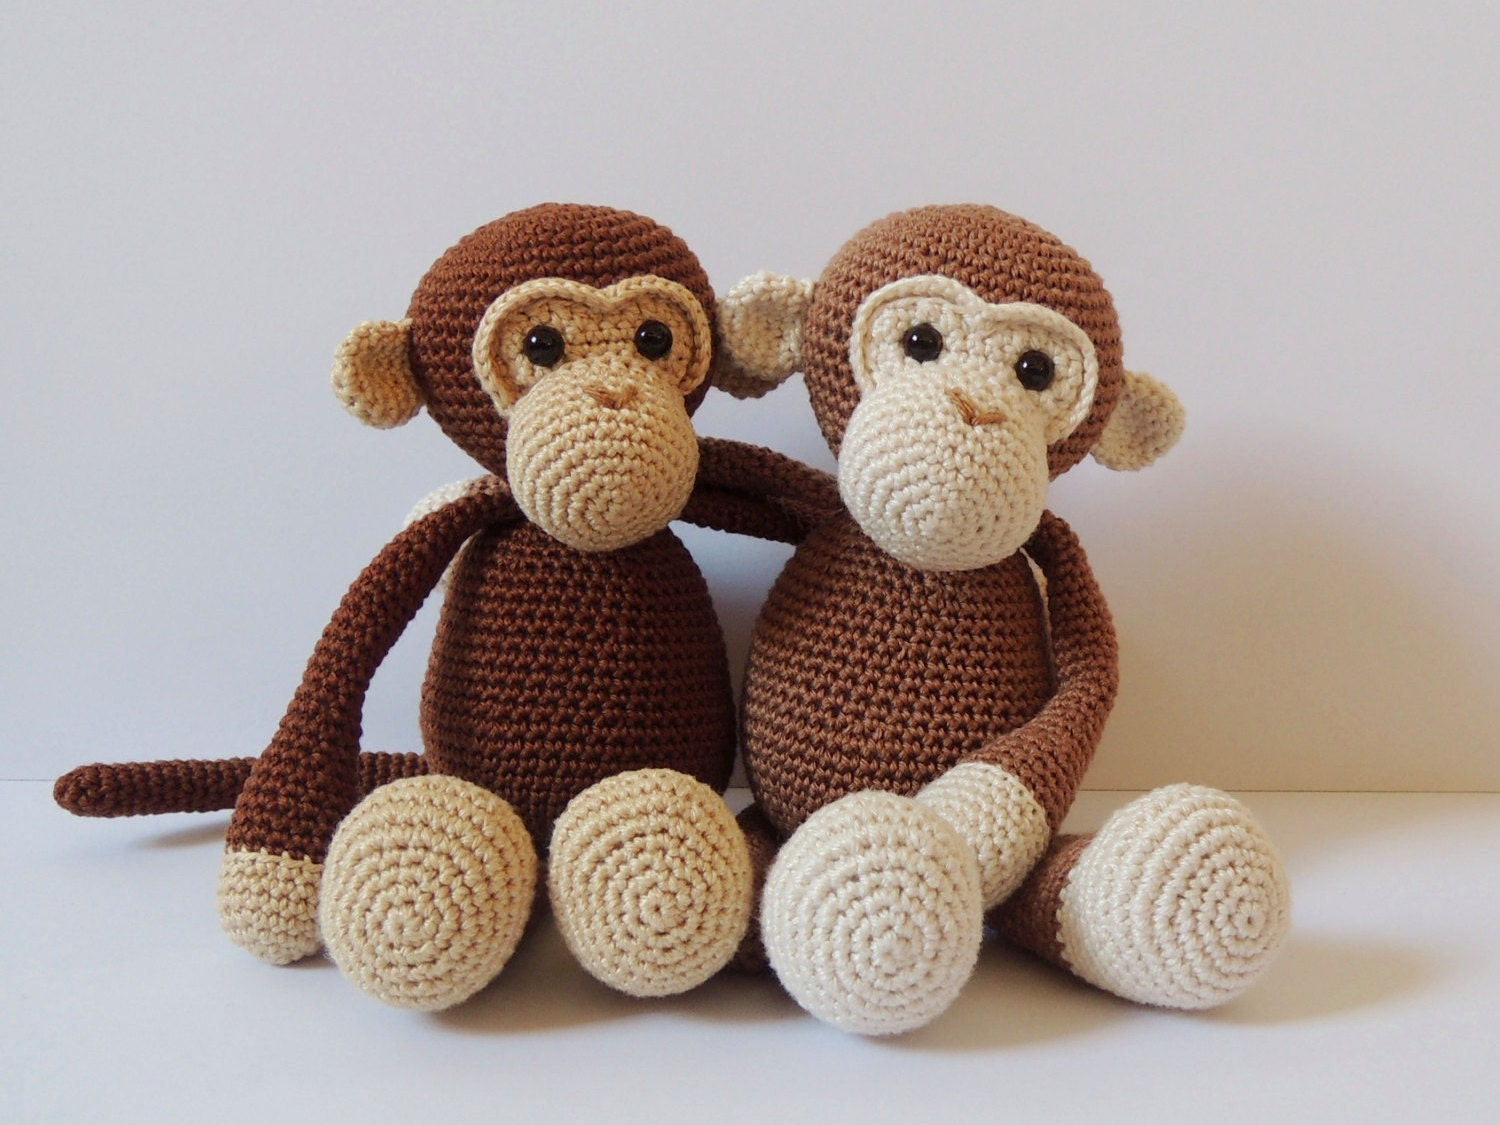 Amigurumi Monkey Patterns : Crochet pattern monkeys michel and robin amigurumi pattern